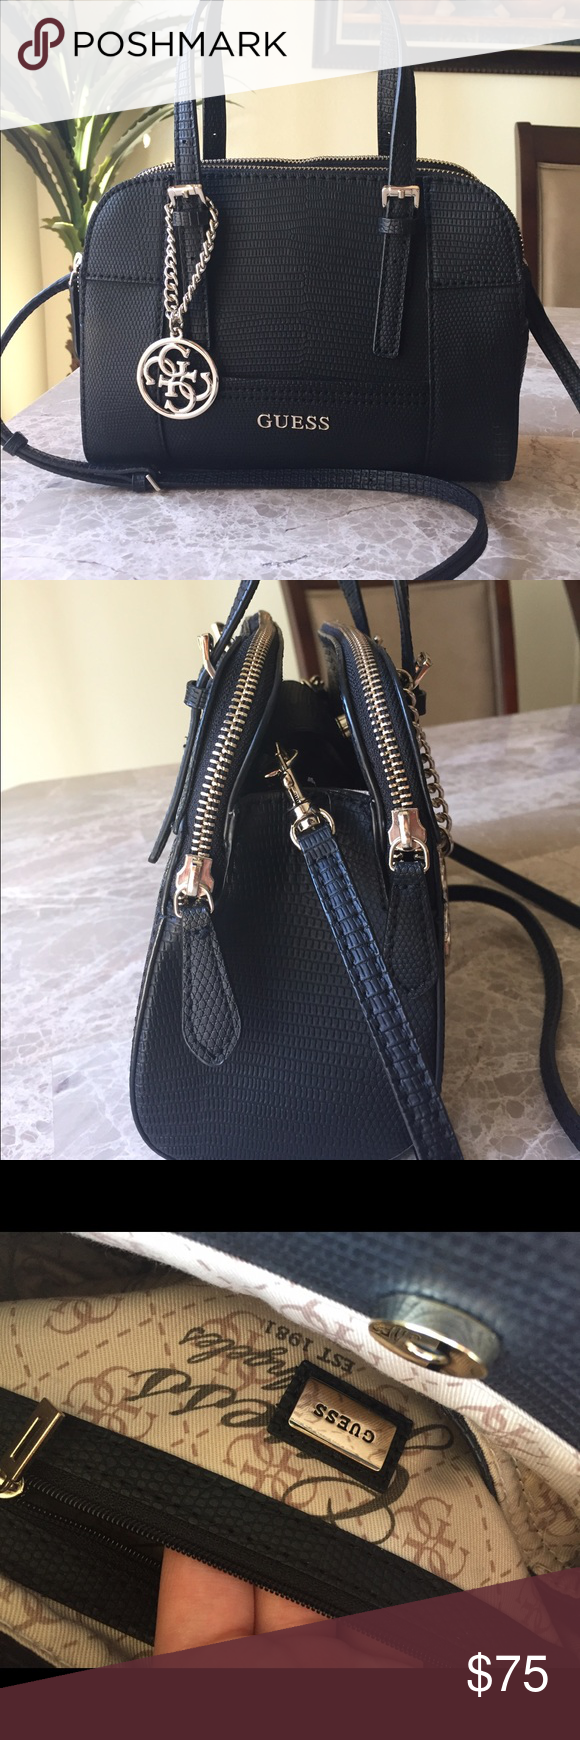 Guess Huntley Small Cali Satchel - Black Only used a few times-in great  condition. Small black handbag. Guess Huntley Small Cali Satchel Guess Bags  Mini ... 15ec1a799437a